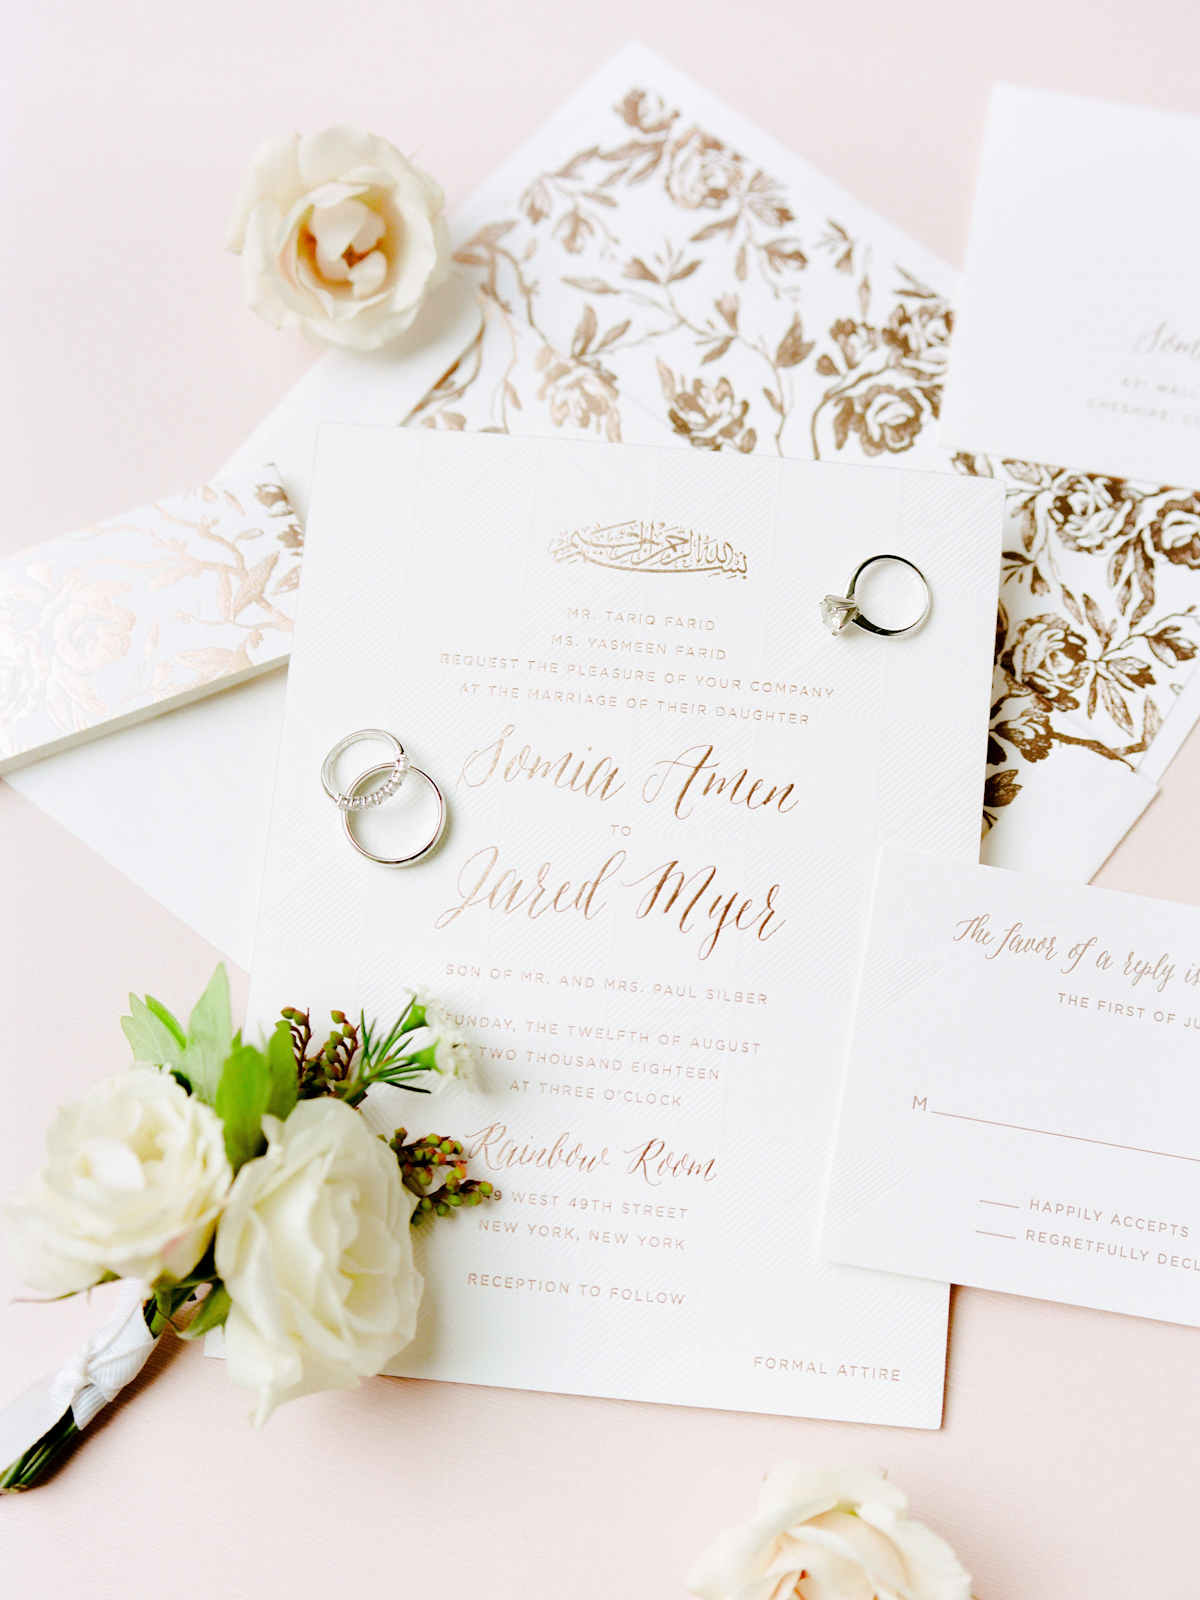 Invitation suite with floral envelope liner for Rainbow Room wedding